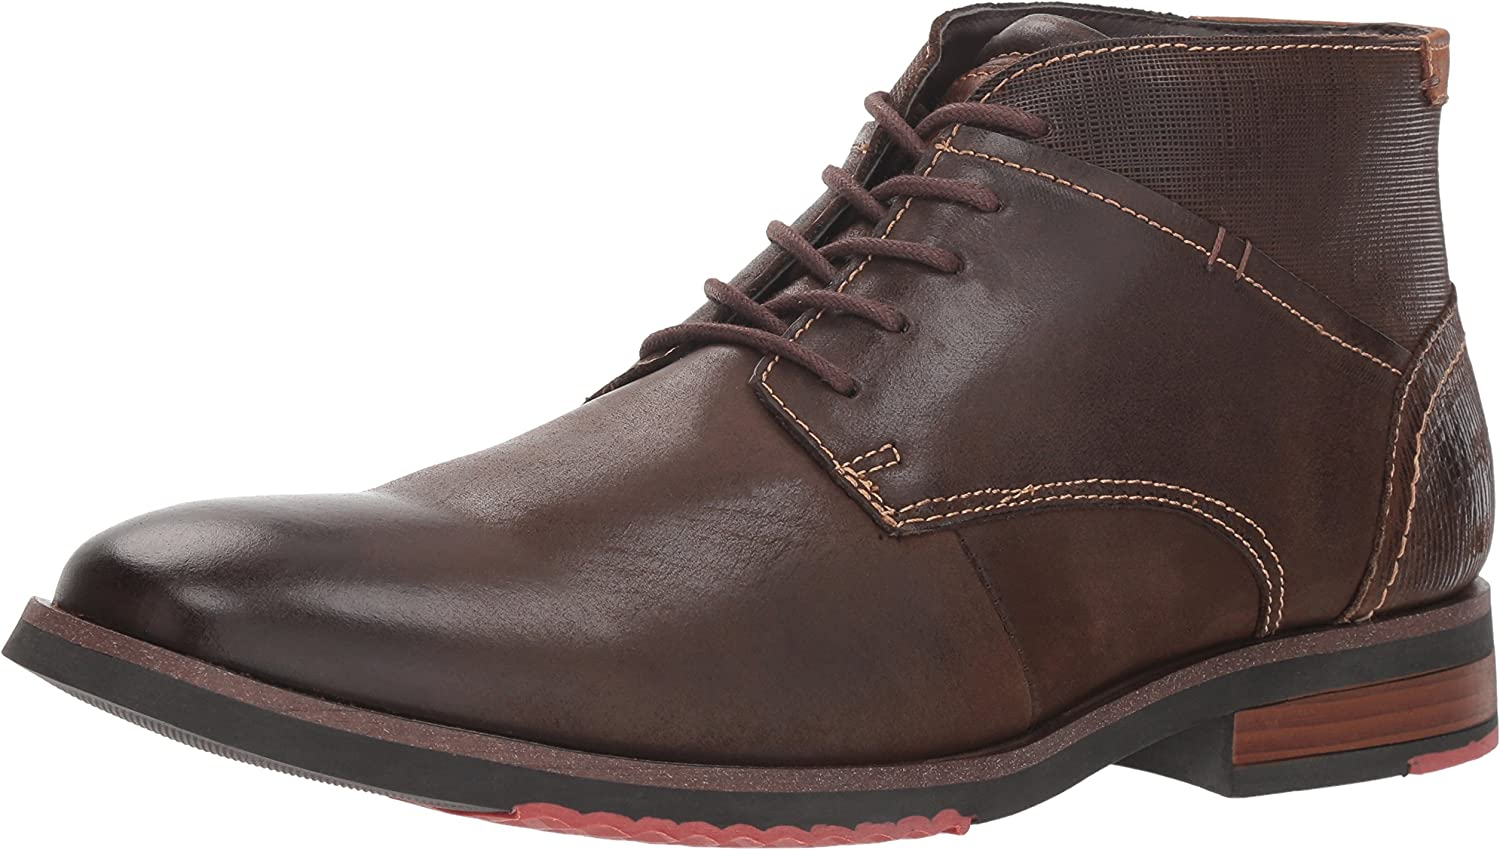 226650cf065 Steve Melded Chukka Boot Men's Madden nfuadv2923-New Shoes ...